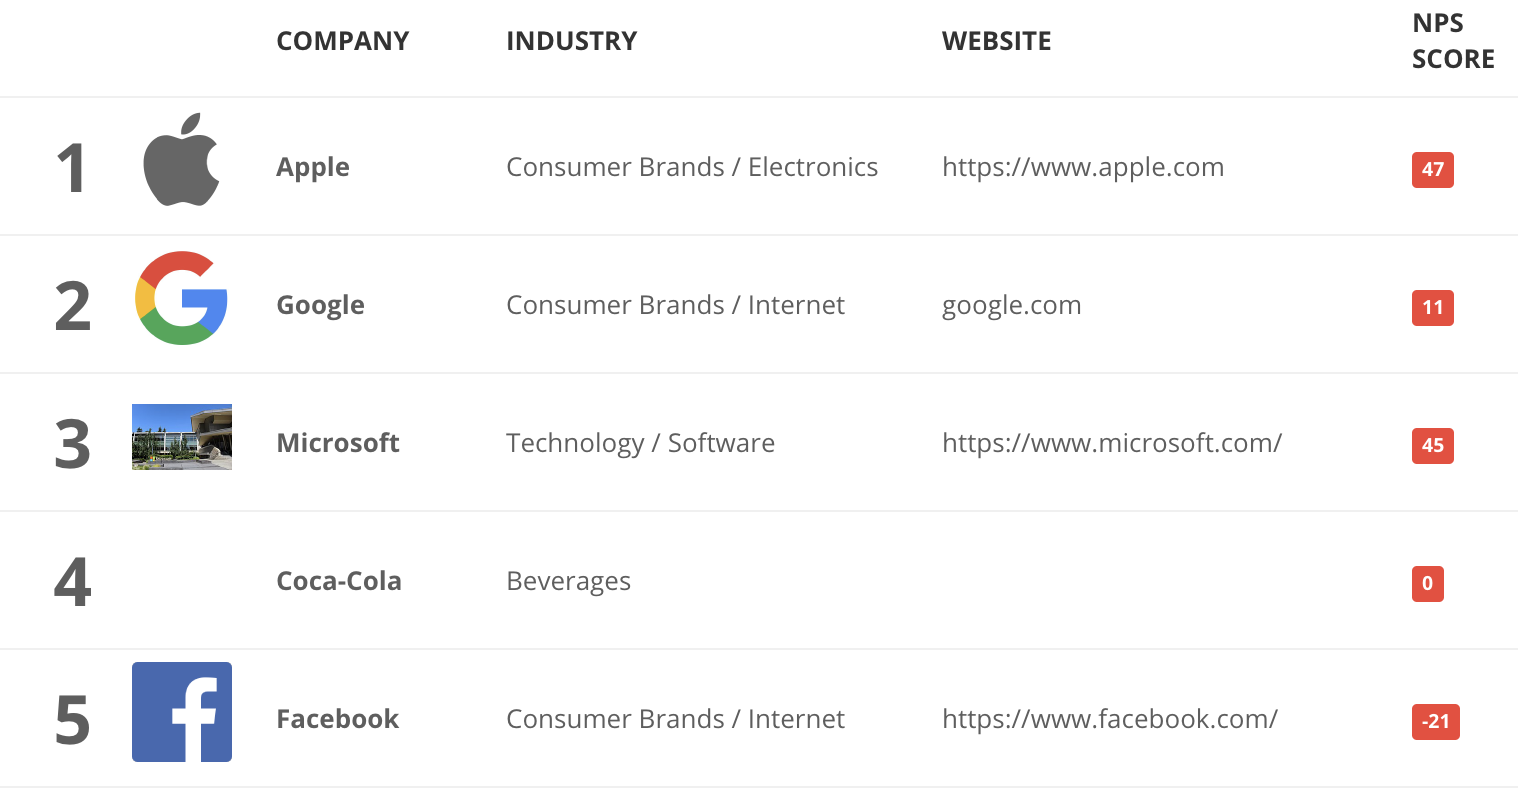 Source:  https://customer.guru/net-promoter-score/top-brands